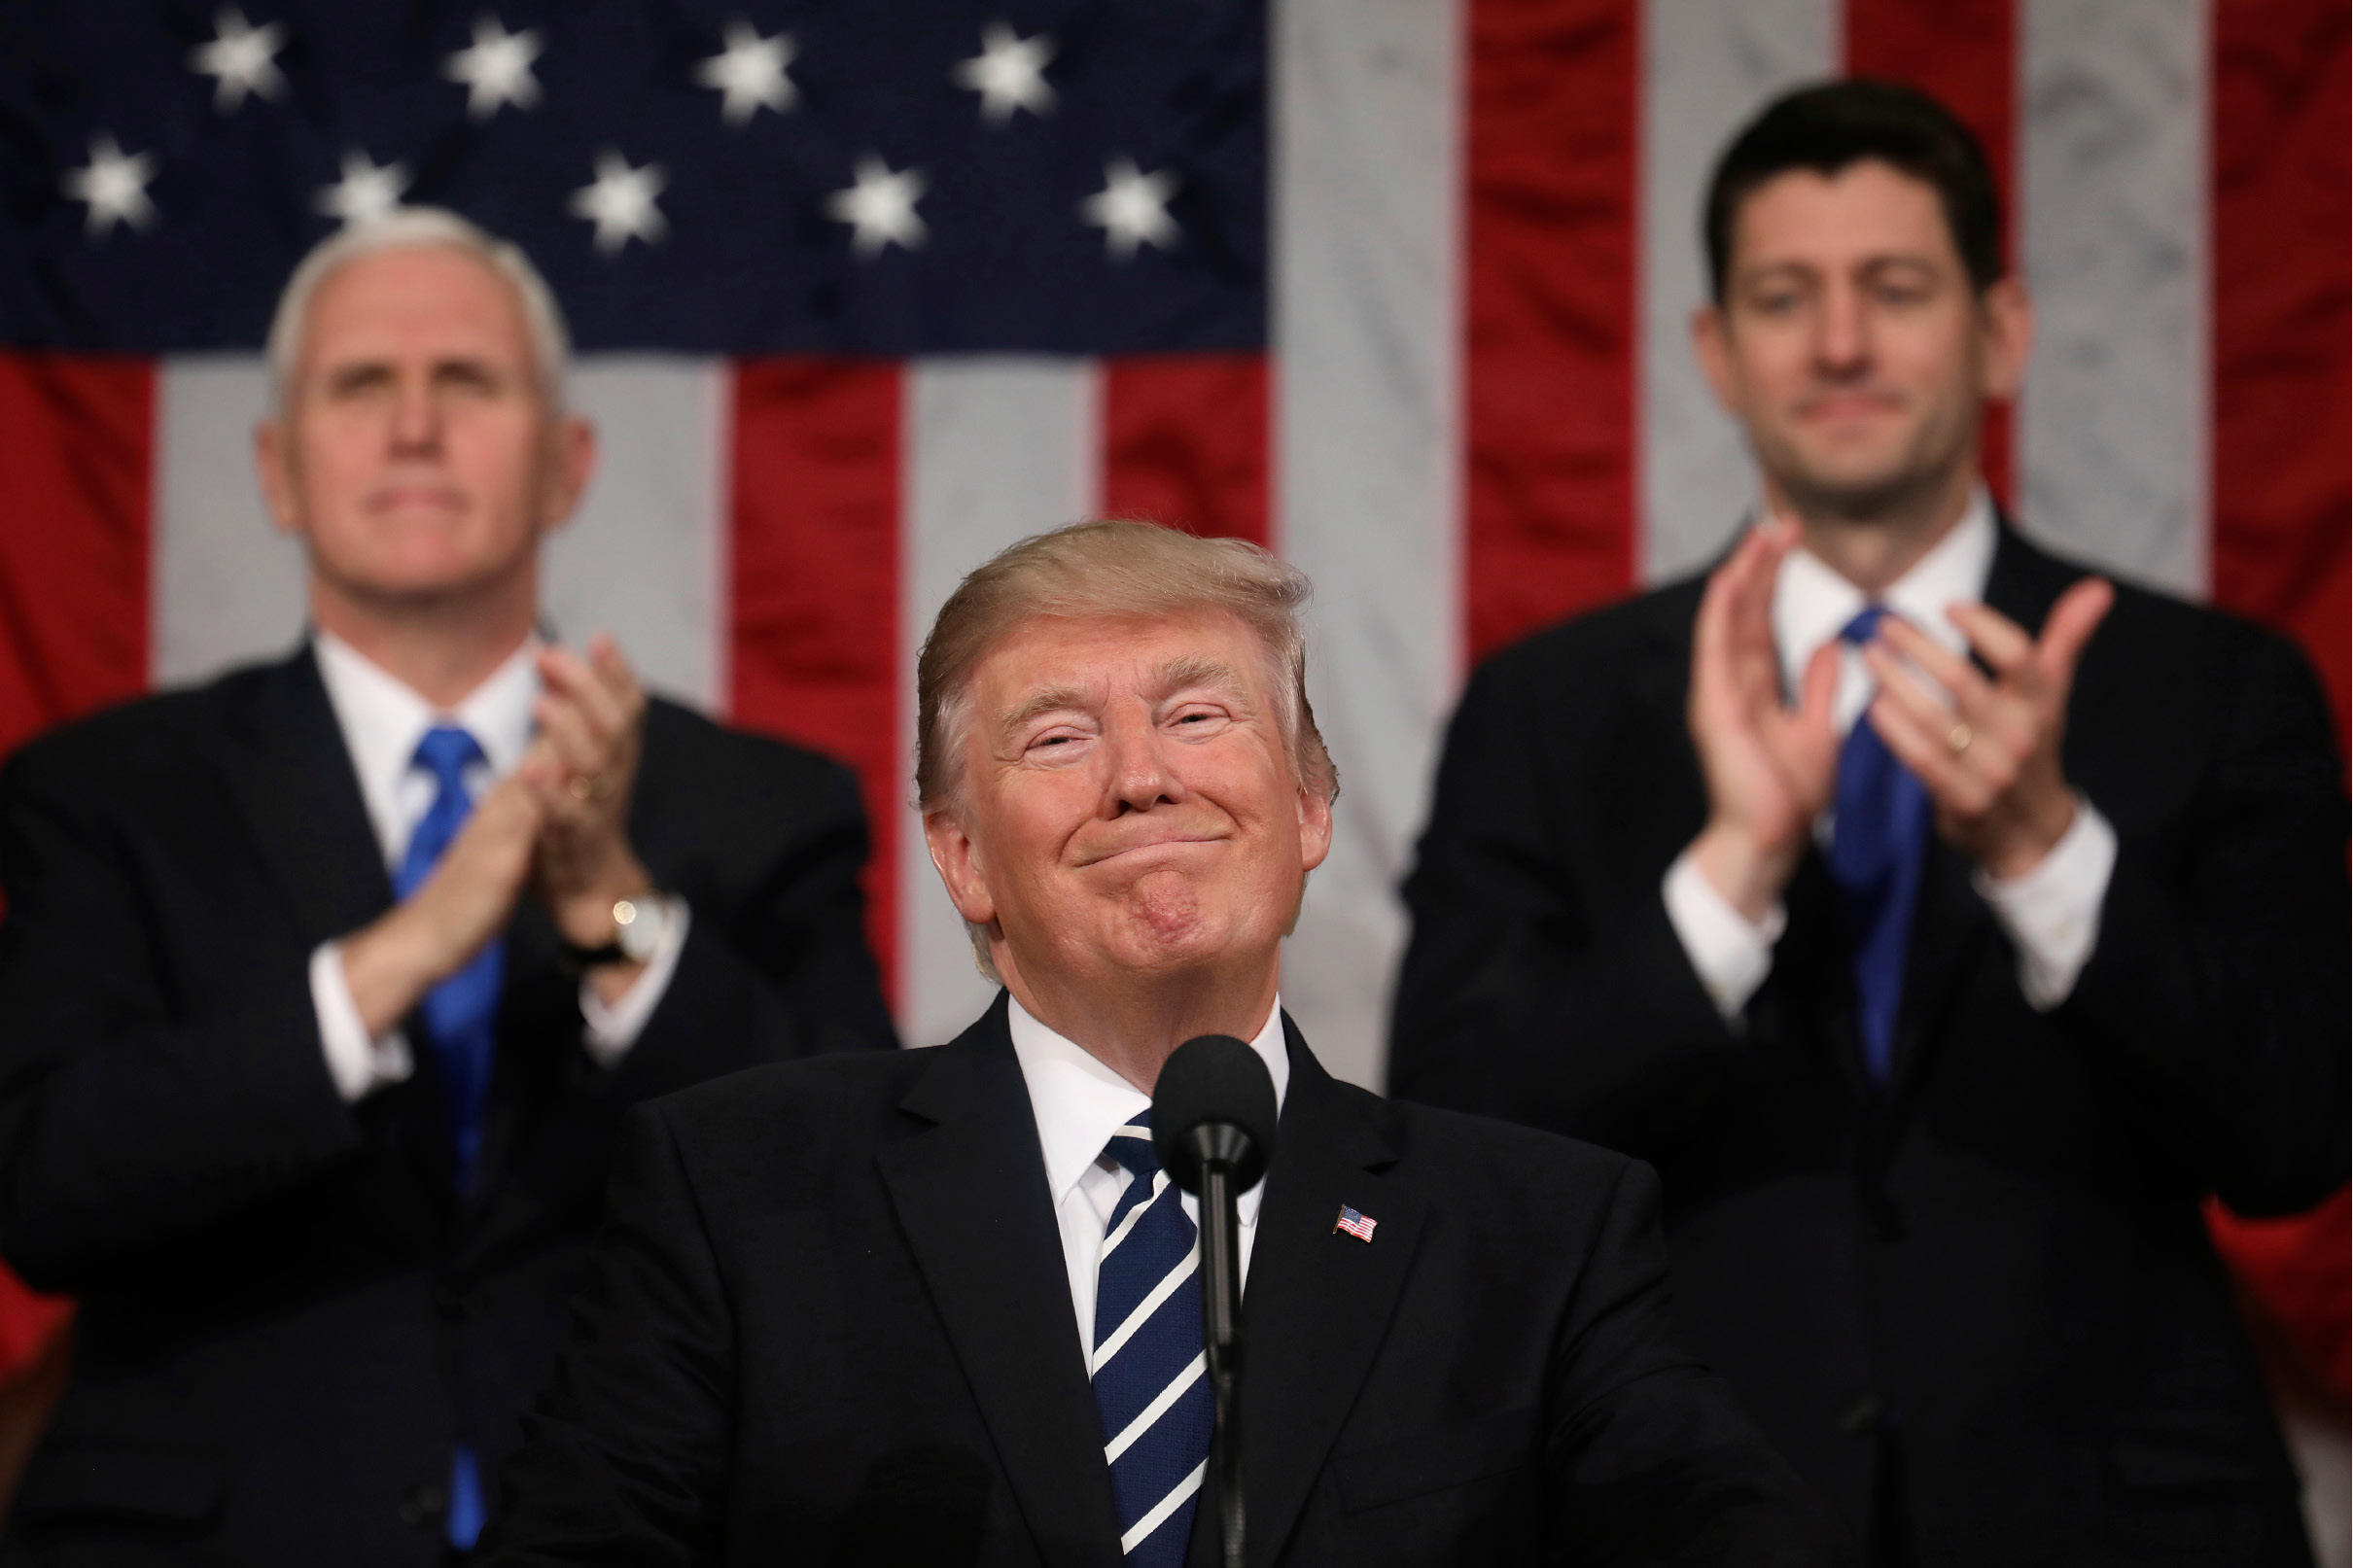 President Donald Trump addresses a joint session of Congress on Capitol Hill in Washington, Tuesday, Feb. 28, 2017, as Vice President Mike Pence and House Speaker Paul Ryan of Wis., applaud. (Jim Lo Scalzo/Pool Image via AP)